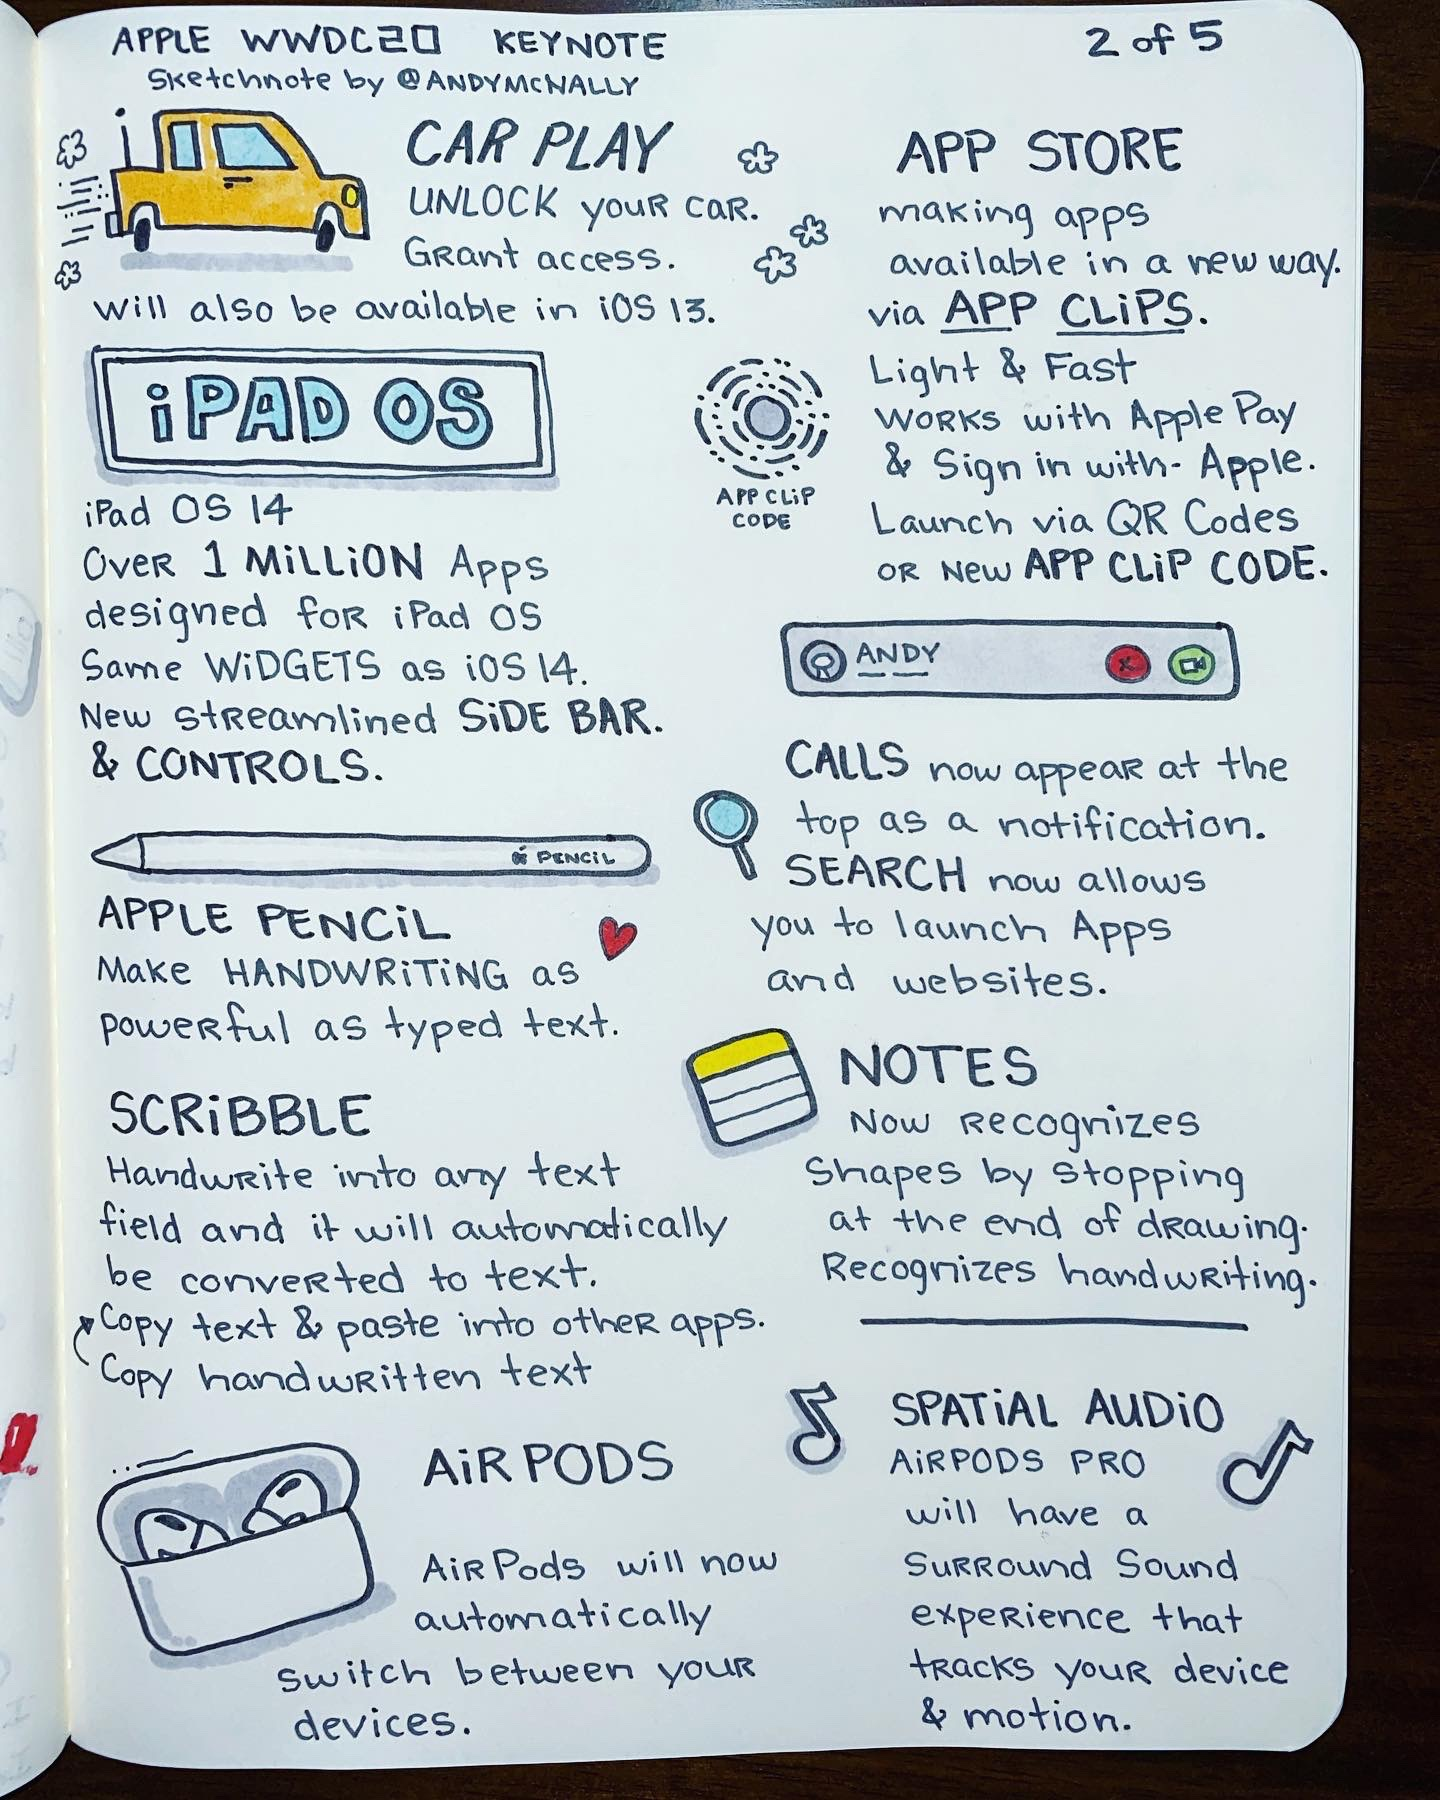 Apple WWDC 2020 Keynote drawing 2 of 5